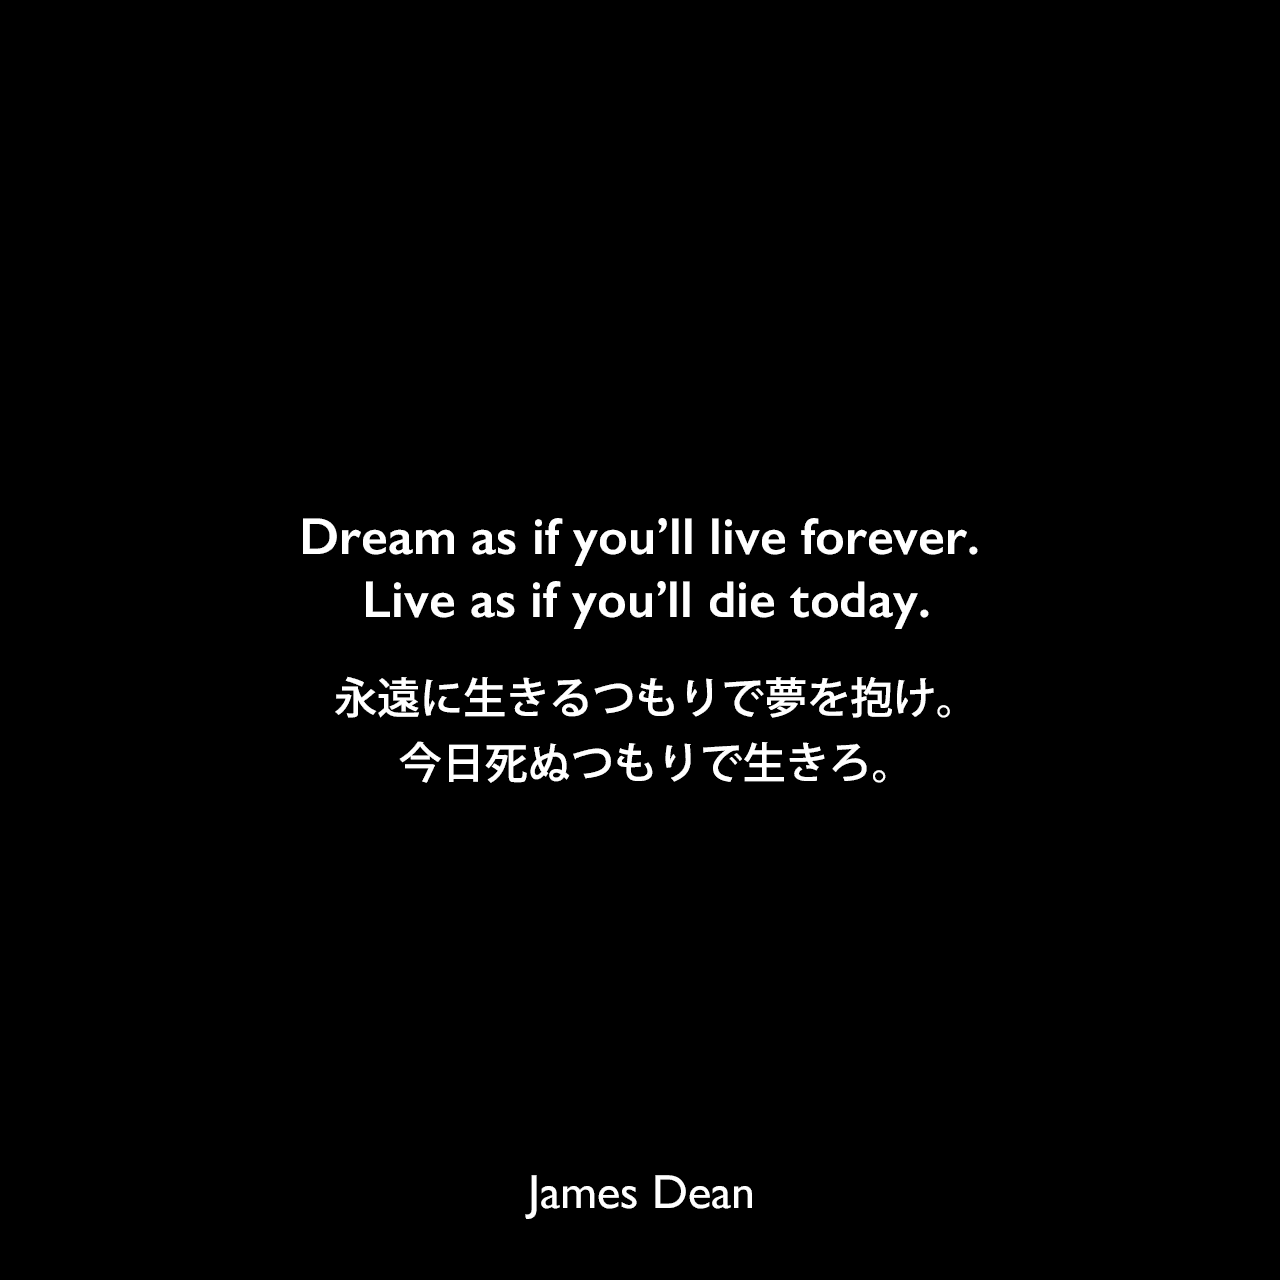 Dream as if you'll live forever. Live as if you'll die today.永遠に生きるつもりで夢を抱け。今日死ぬつもりで生きろ。James Dean